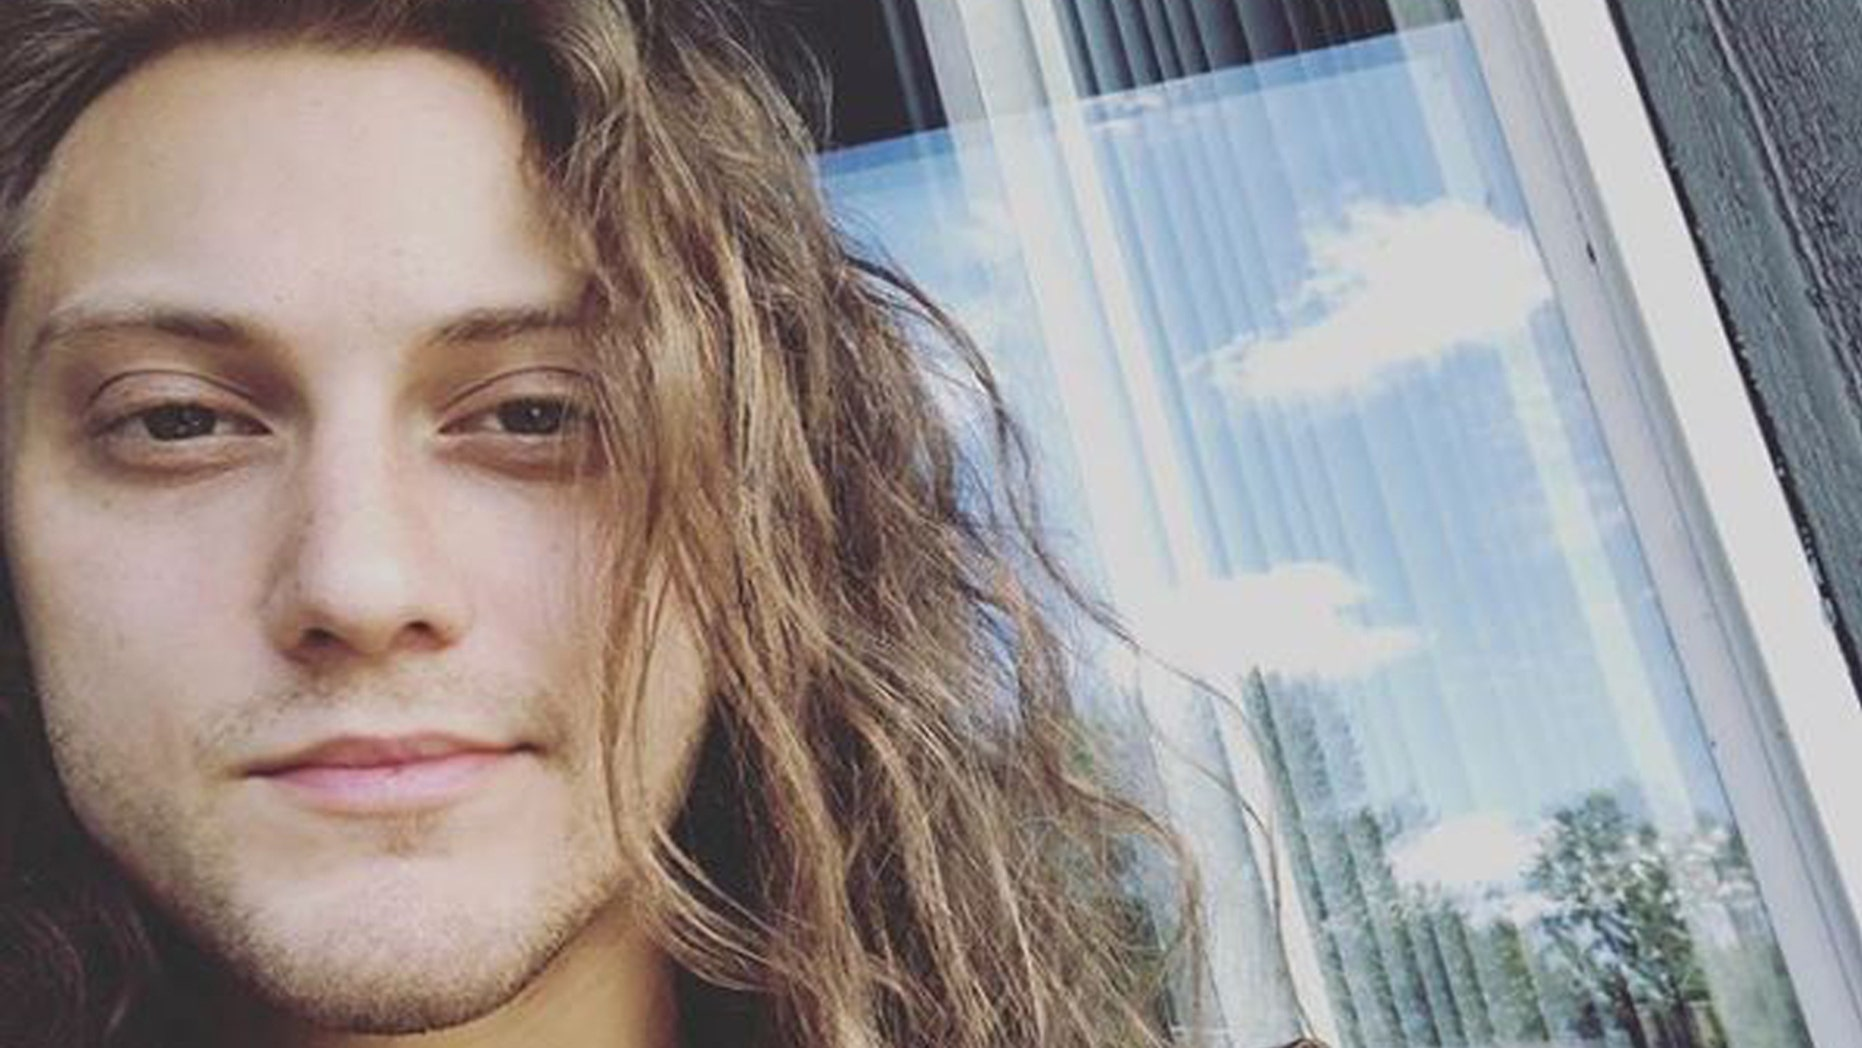 Soul rock singer Cody Ray Raymond has departed from